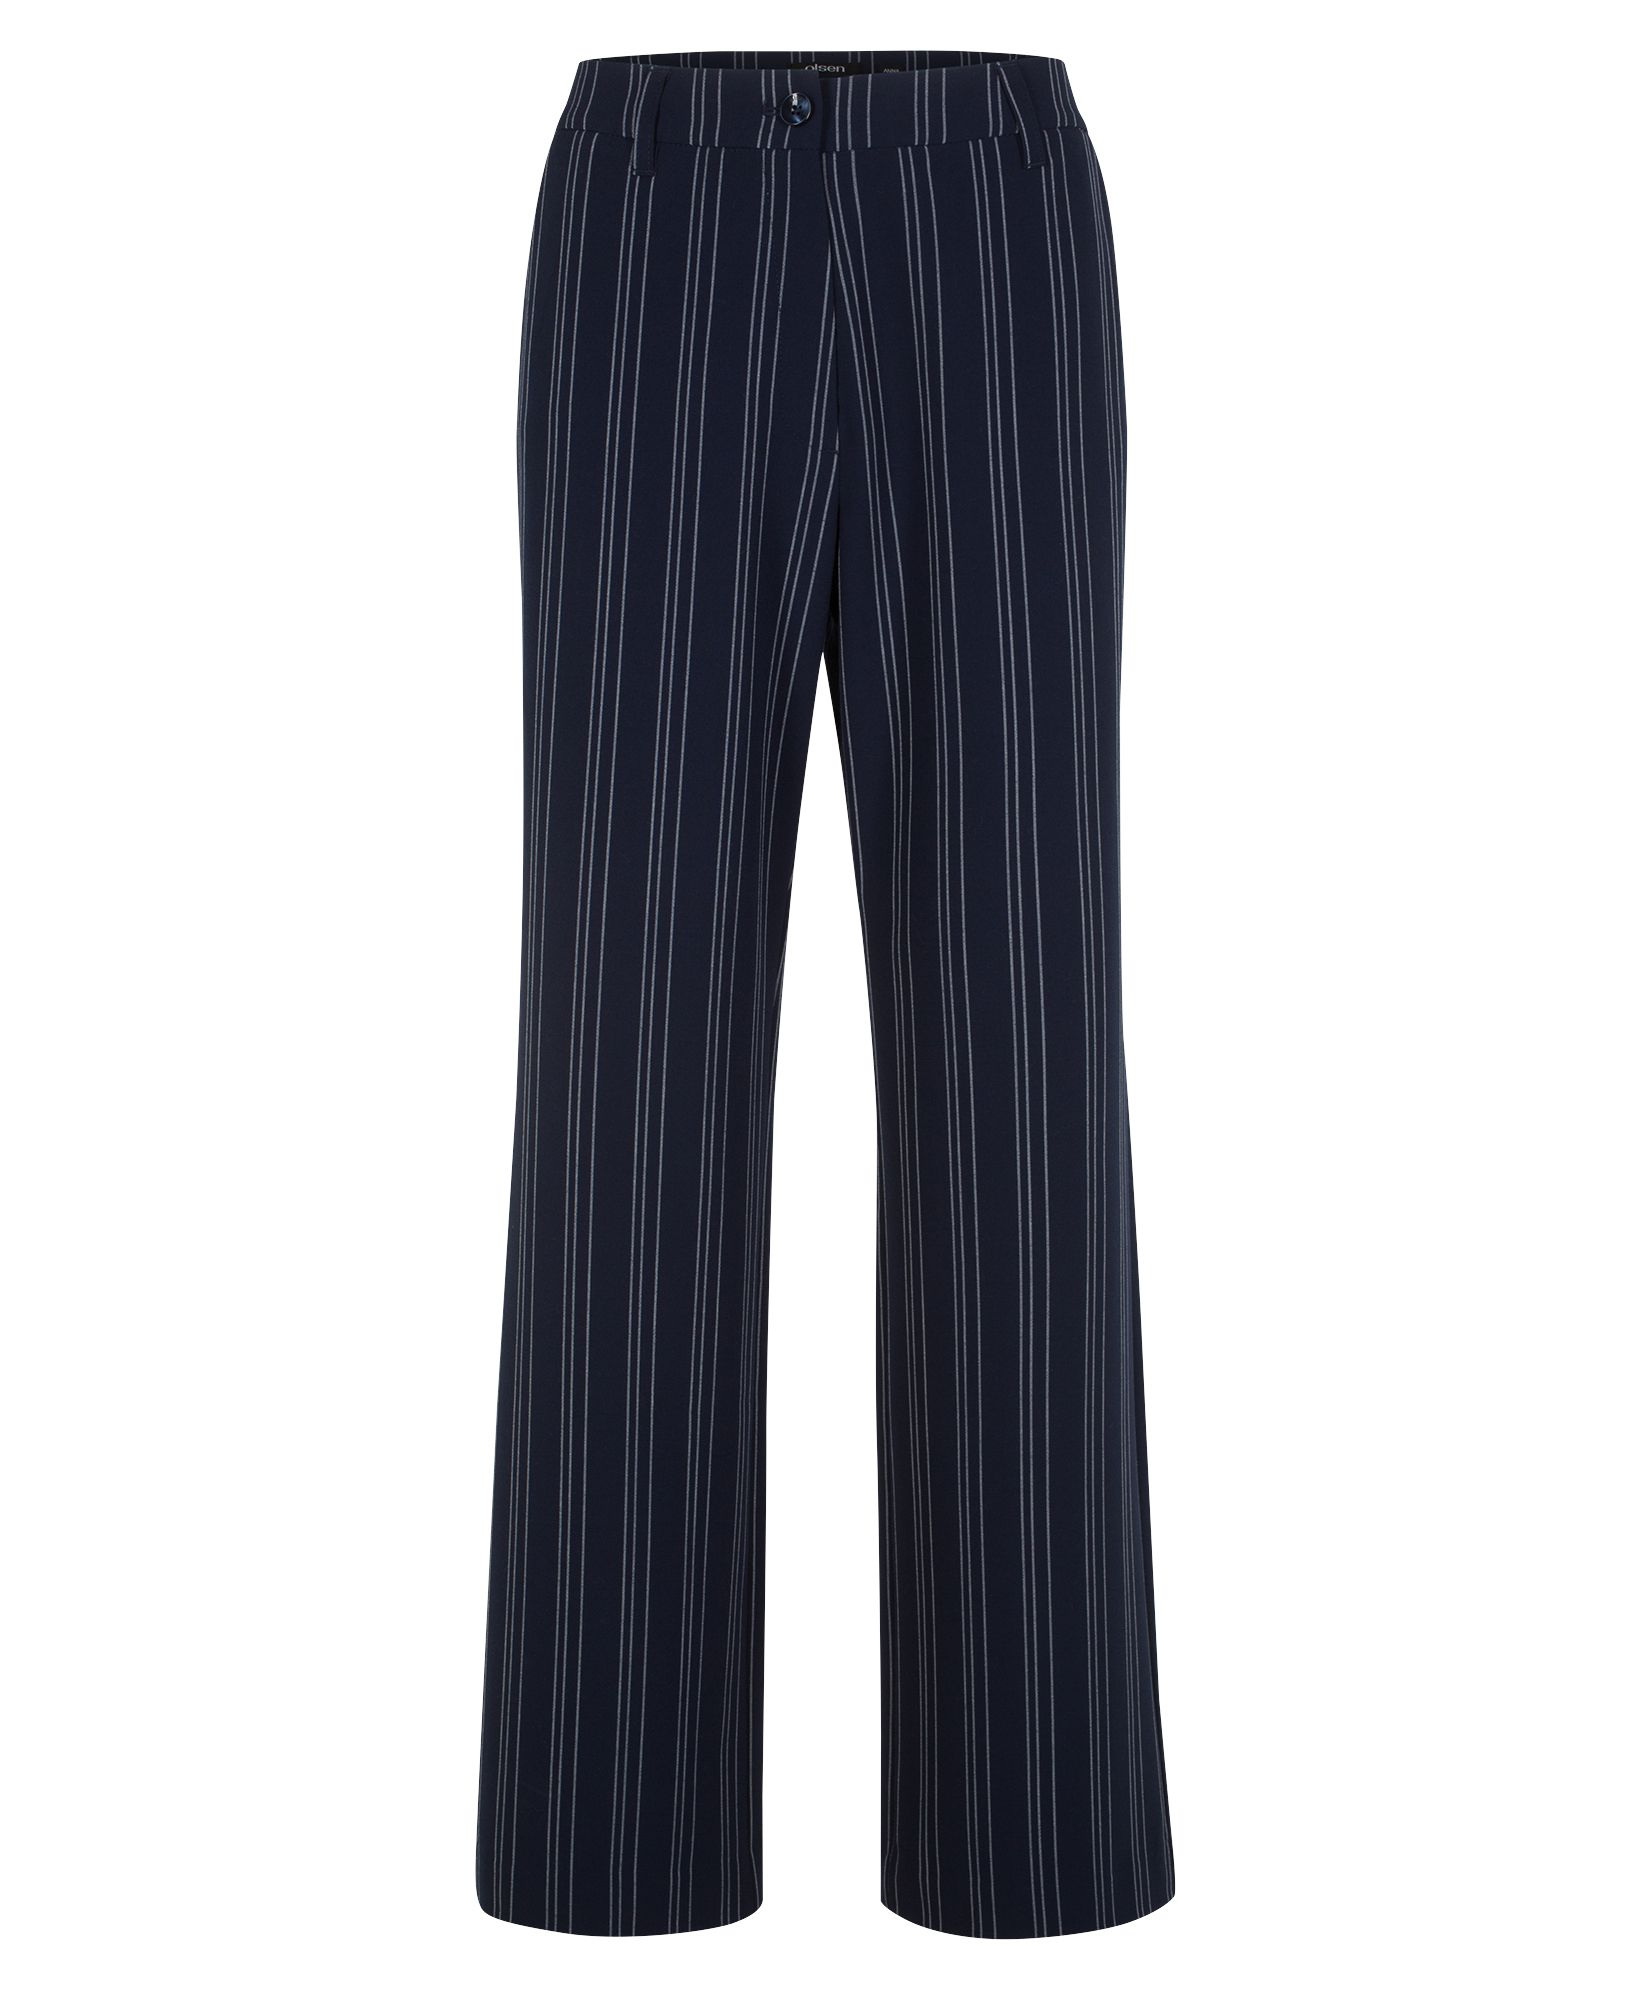 Olsen Trousers Anna With Pinstripes - Dark Pacific, Pacific